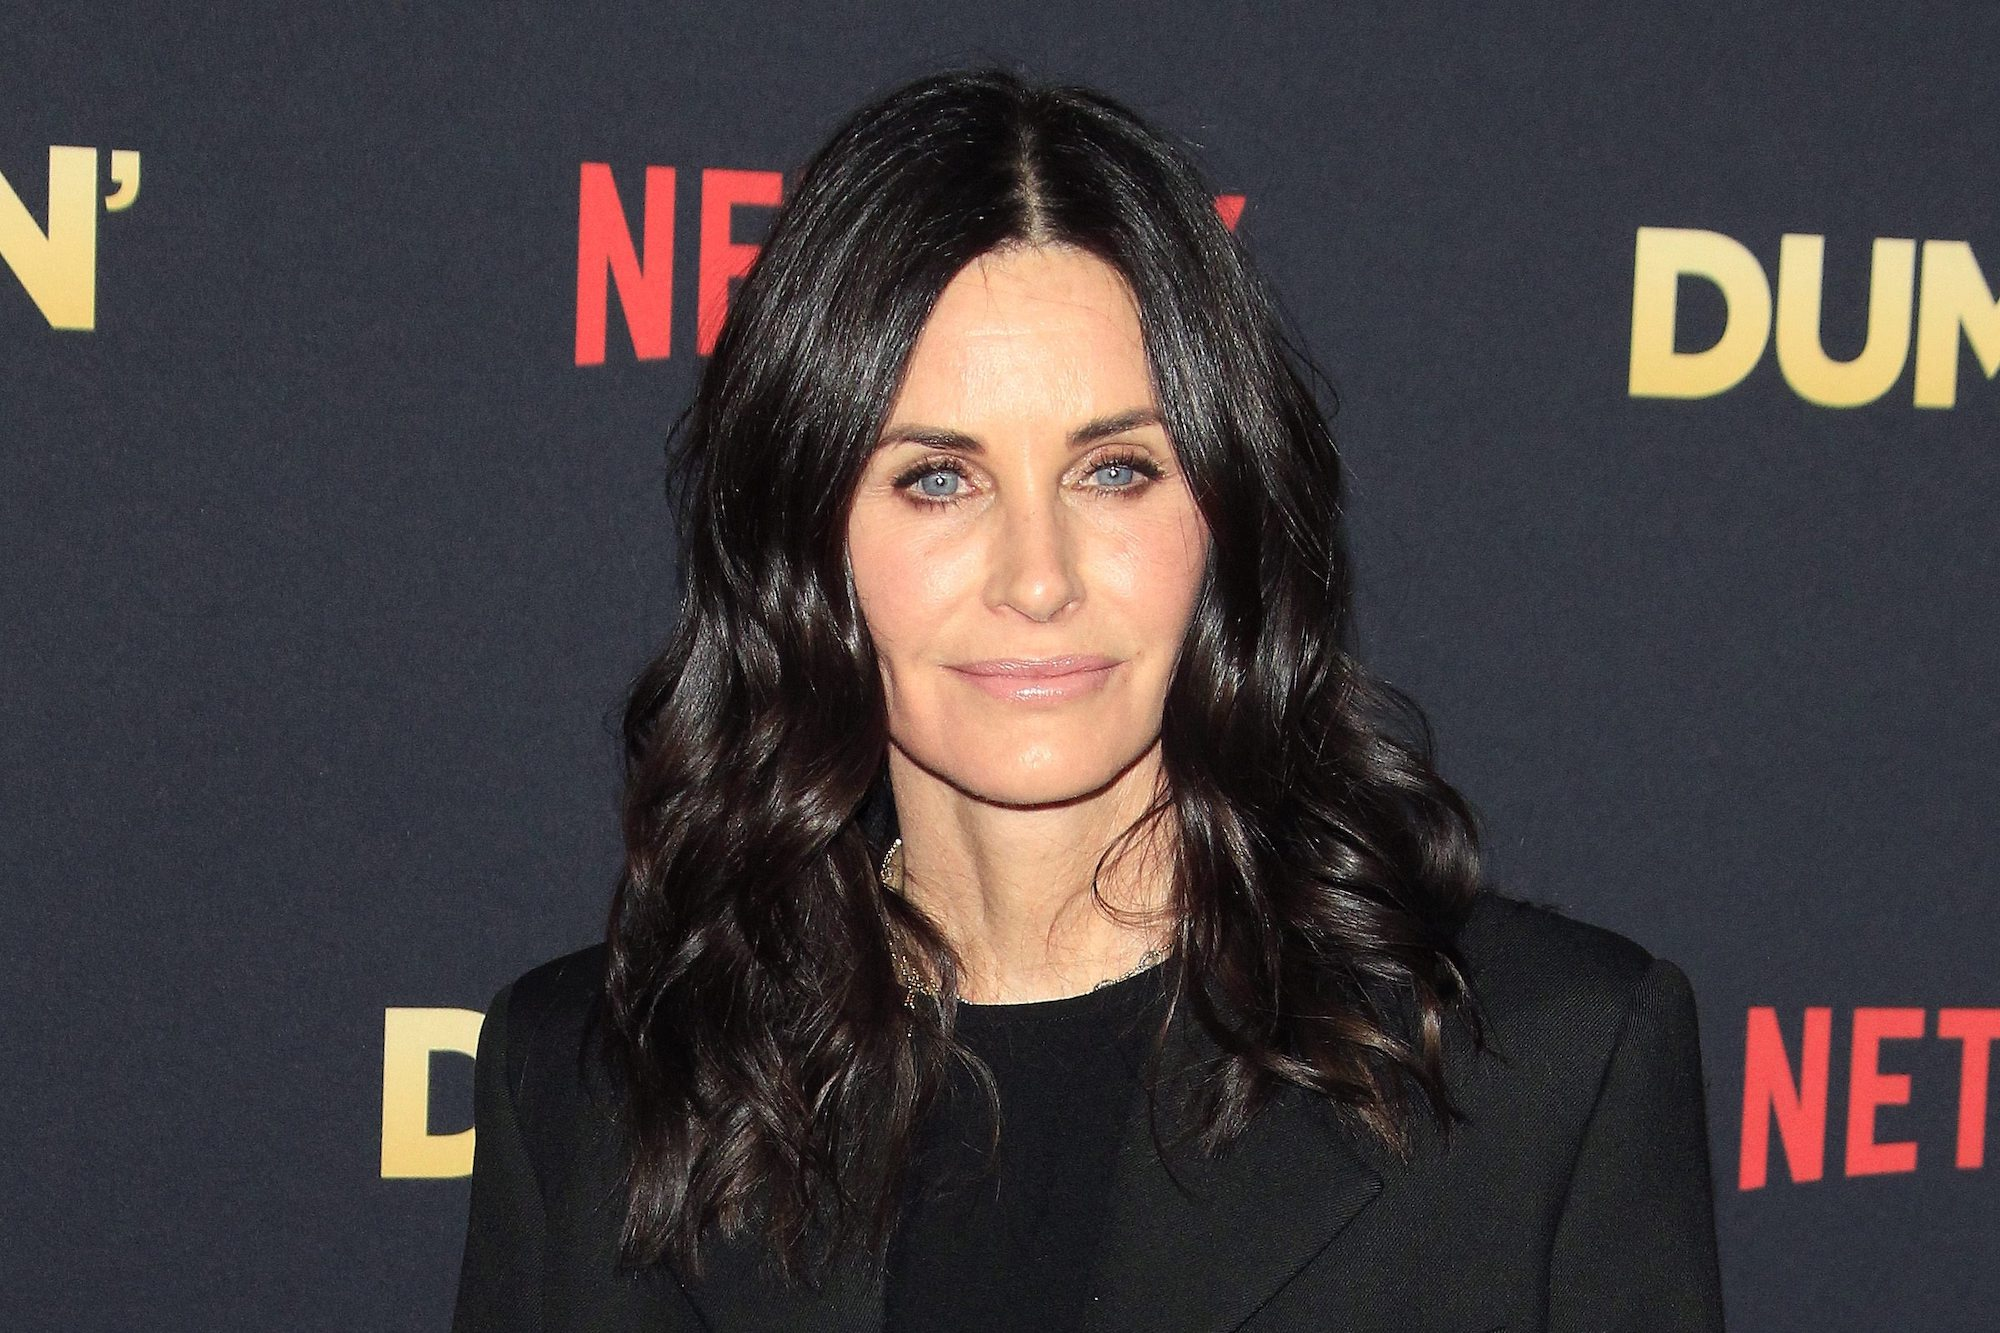 Coco Arquette Attempts To Do Mom Courteney Cox's Makeup: 'I Guess You Get What You Pay For'